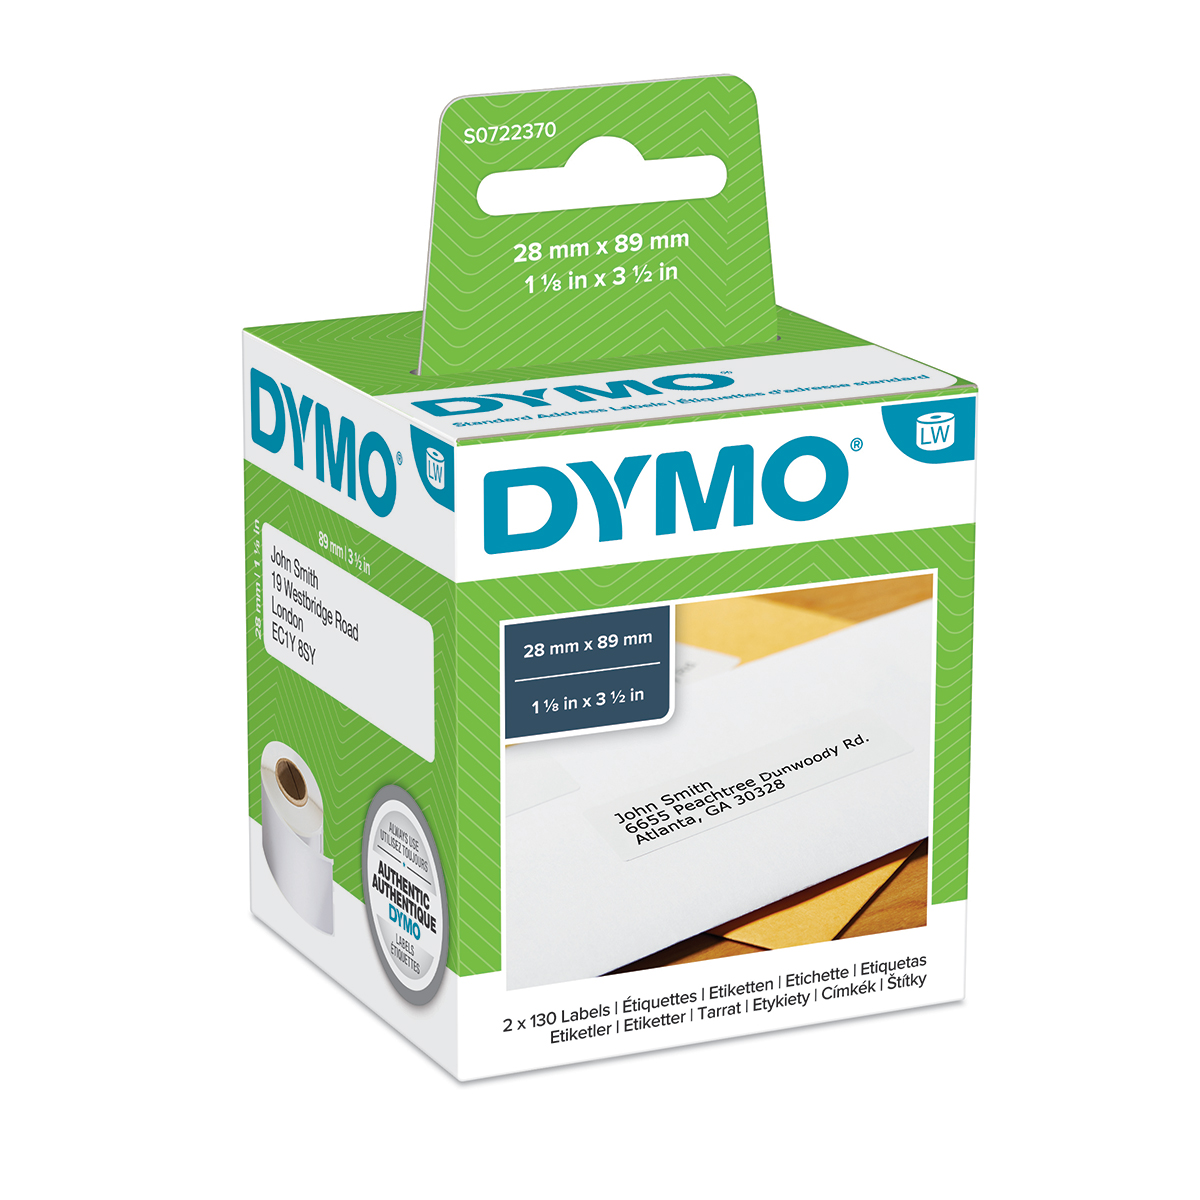 Dymo 99010 Standard Address Label Black On White Box of 2 rolls